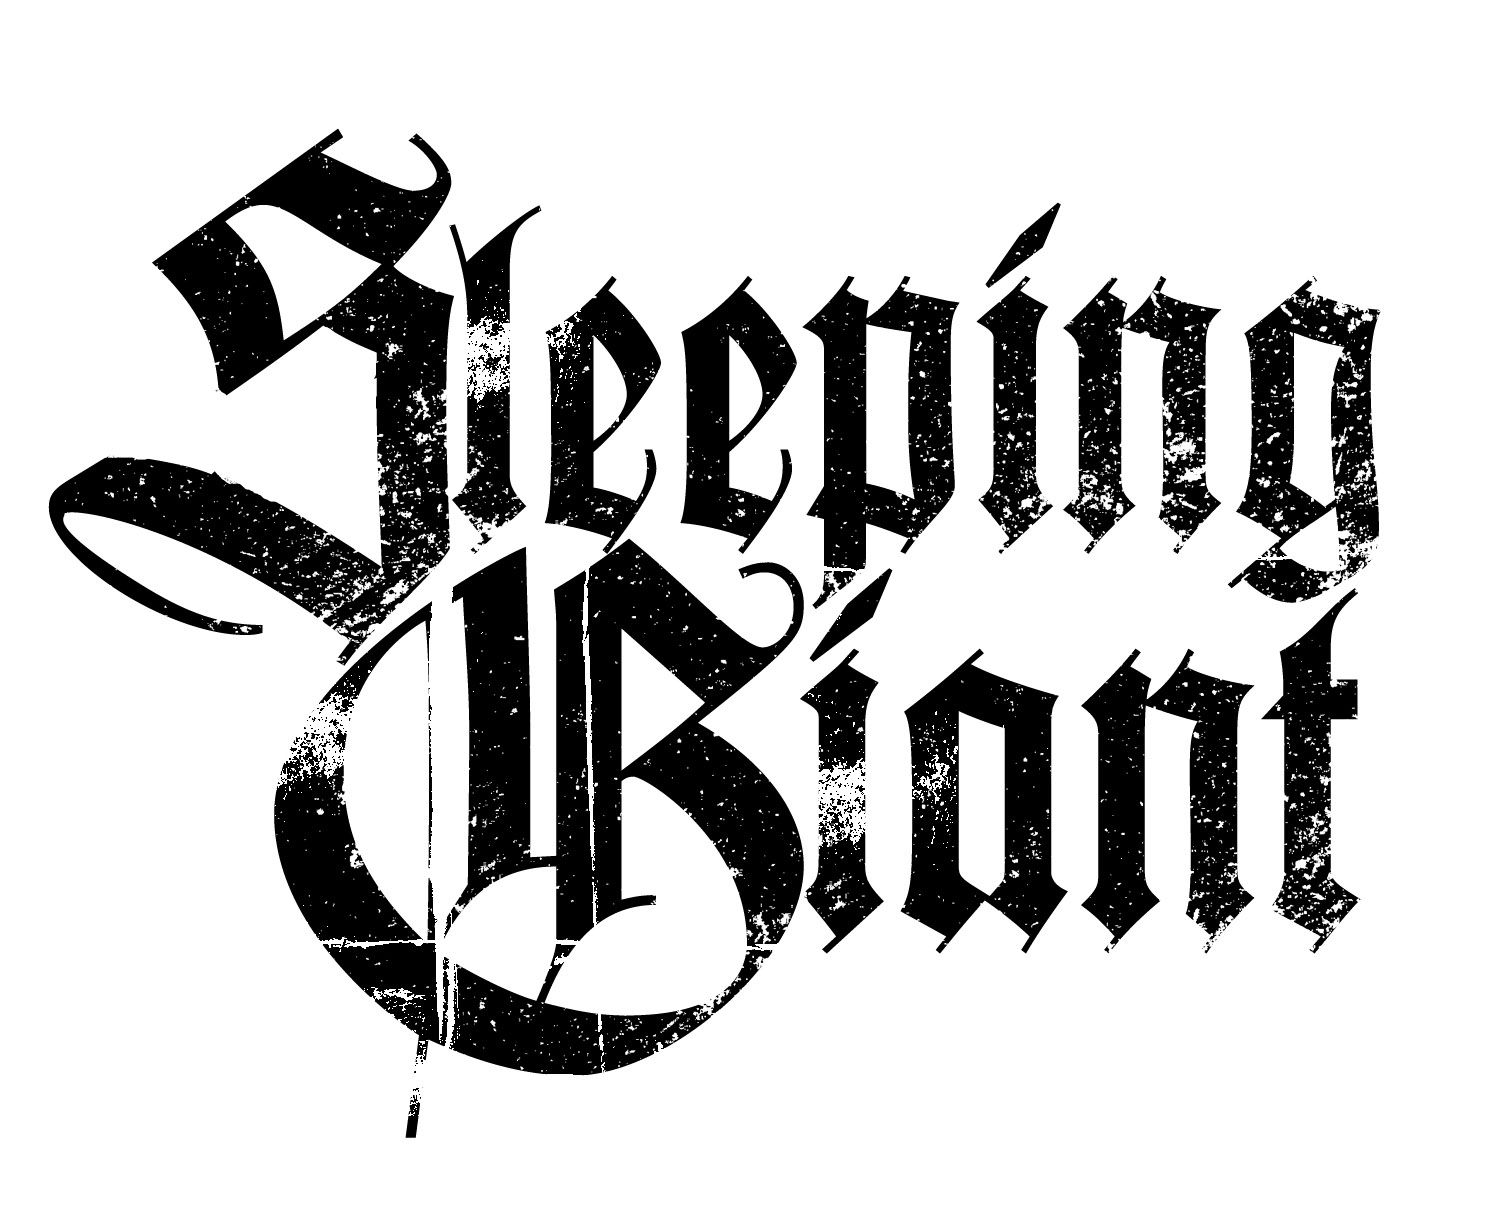 sleeping giant band logo inspiration pinterest band band rh pinterest com metal band logo for sale metal band logo maker